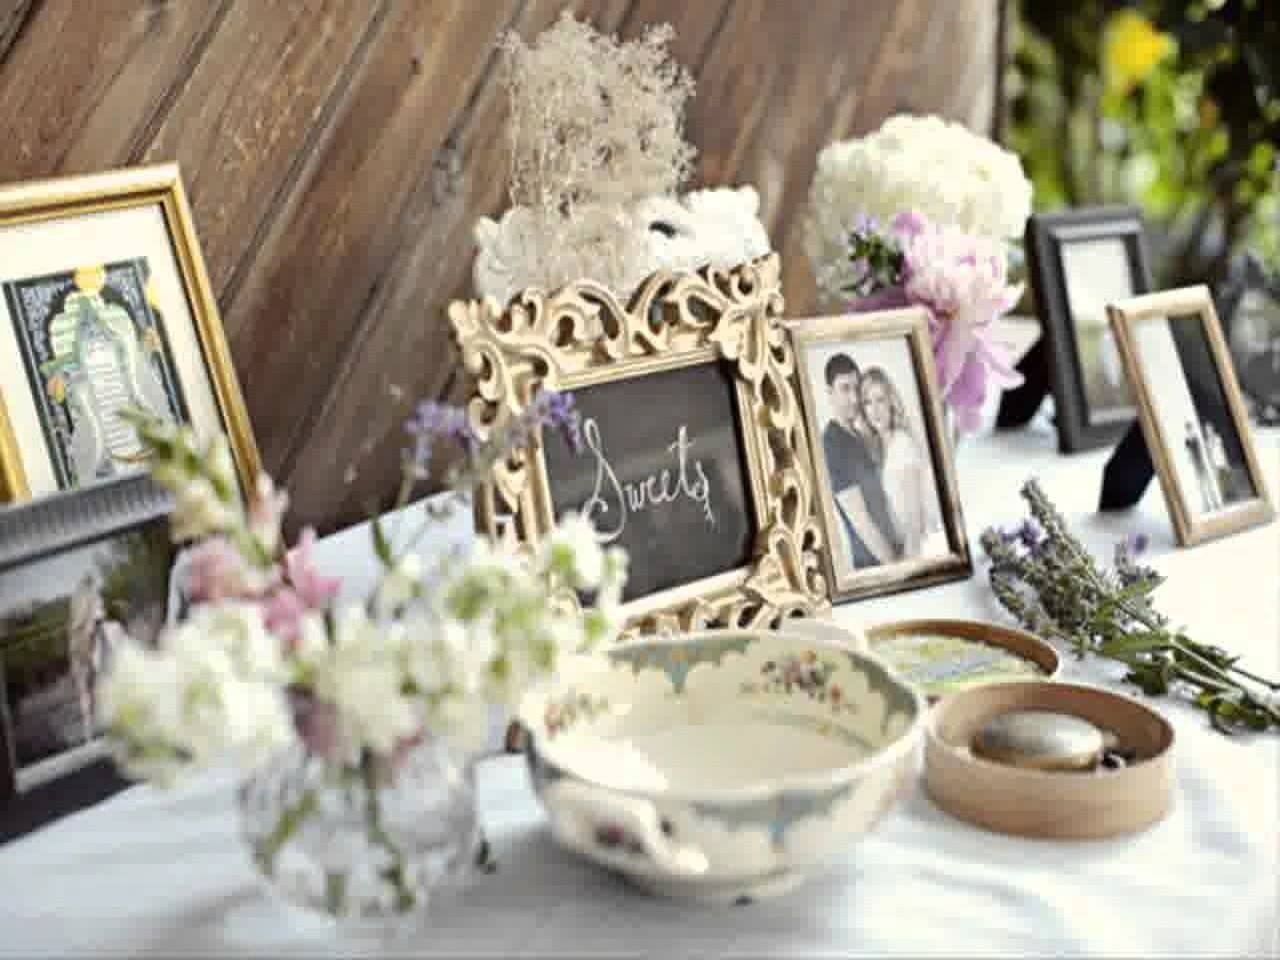 10 Attractive Ideas For A Small Wedding attractive small wedding ideas small home garden wedding ideas 2020